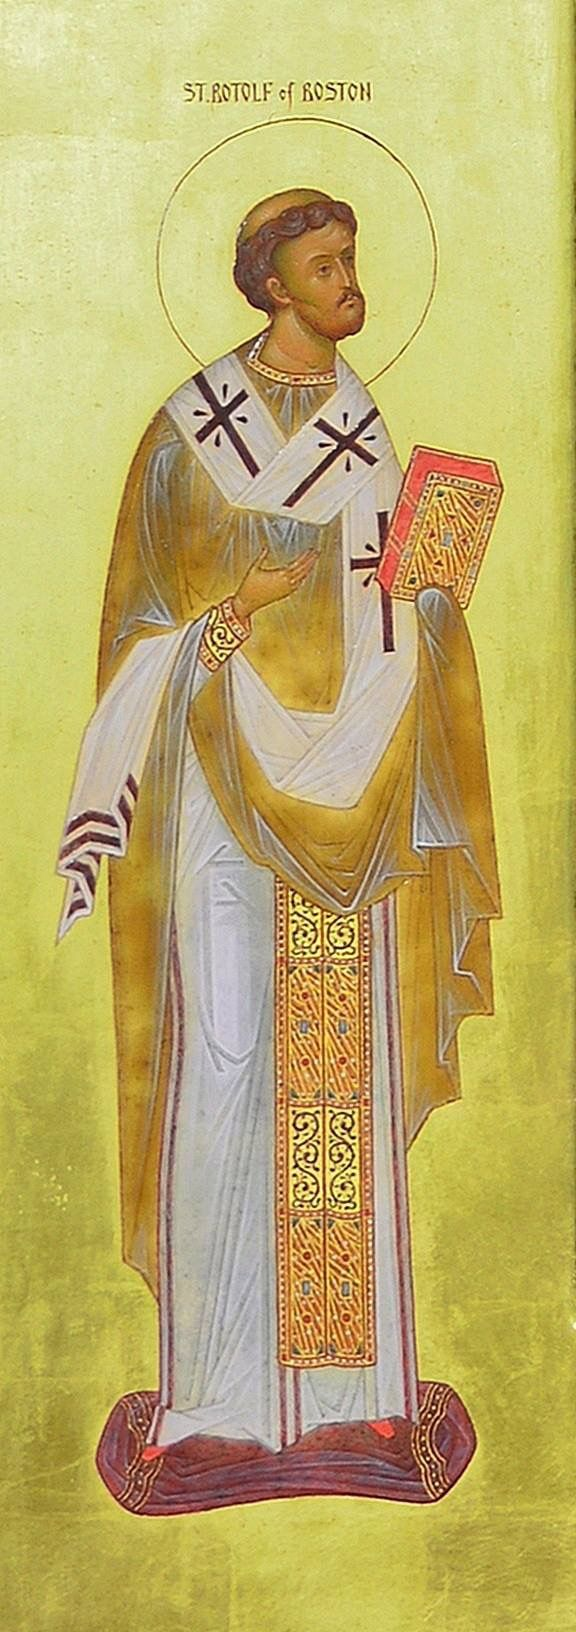 St. Botolph, an early saint from Orthodoxy's Western heritage, preached the gospel in England in the seventh century. Saint Botolph was born in England around 610.  The feast of St. Botolph is celebrated June 17.